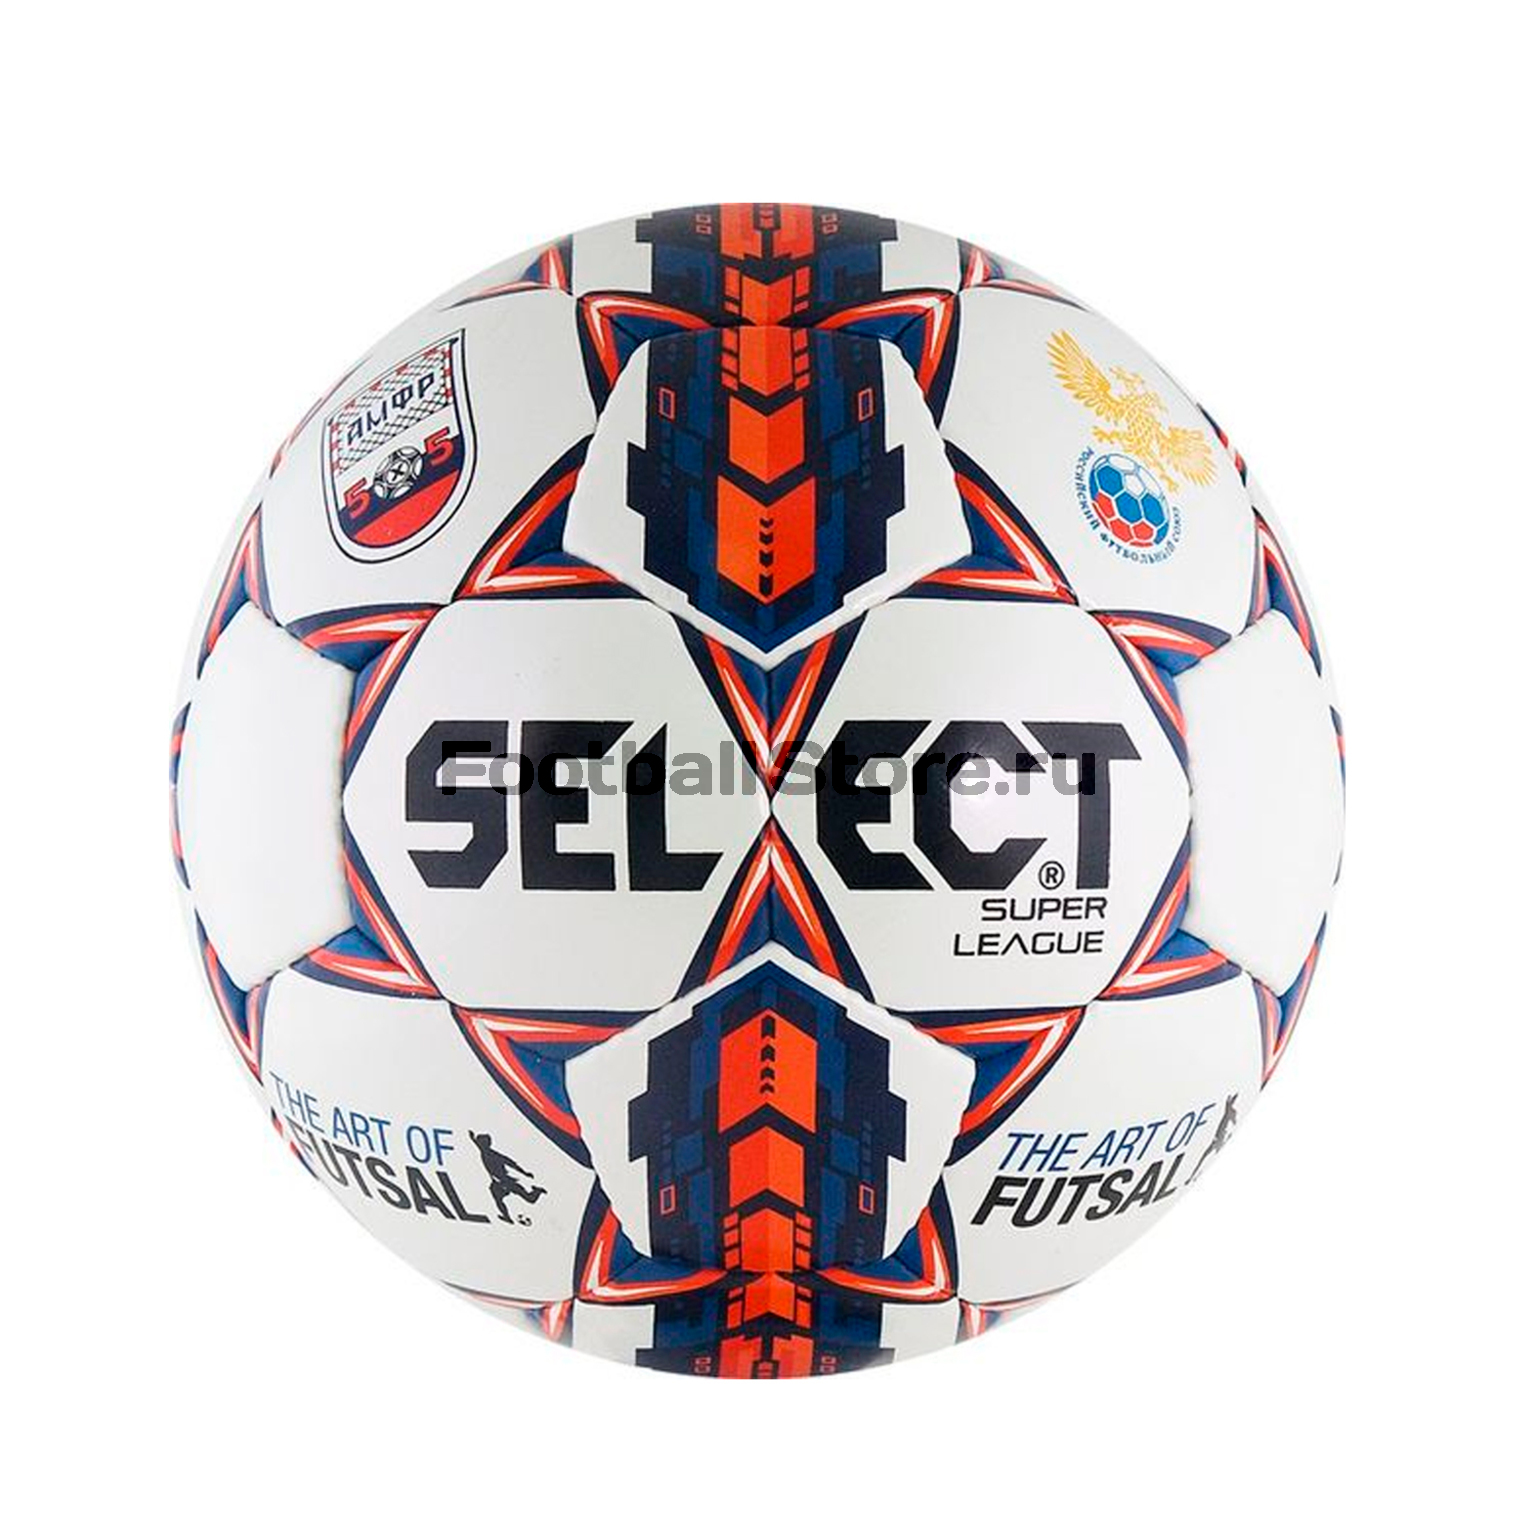 Футбольный мяч Select Super League АМФР РФС Fifa 850717 футбольный мяч select super league амфр рфс fifa 850717